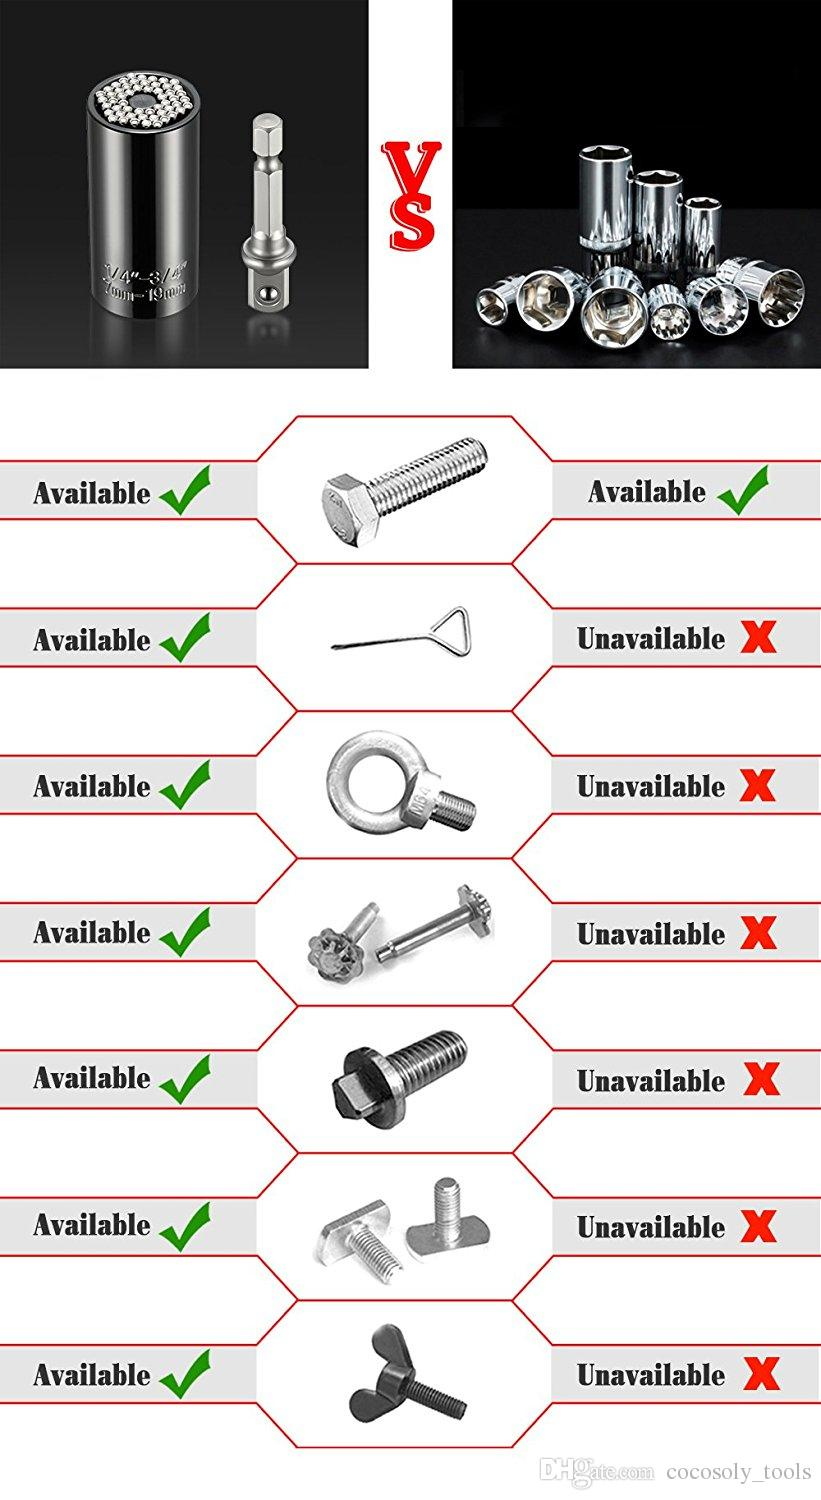 Universal Sockets,7mm-19mm Universal Sockets Metric Ratchet Wrench Sets with Power Drill Adapter Professional Repair Tools